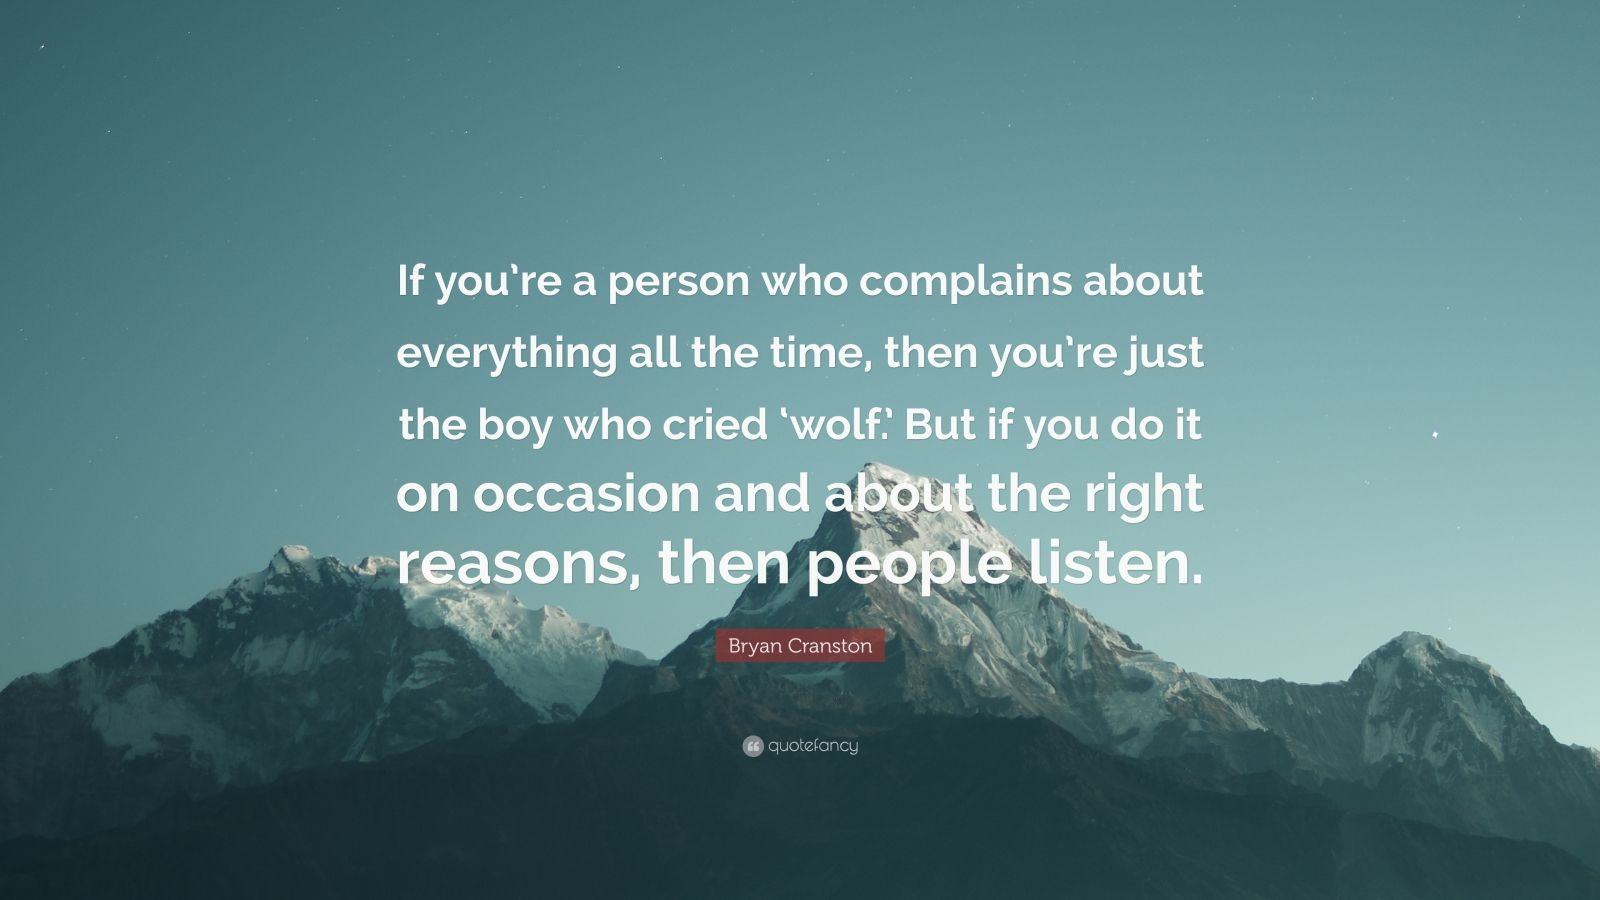 """Bryan Cranston Quote: """"If you're a person who complains about everything all the time, then you're just the boy who cried 'wolf.' But if you do it on occasion and about the right reasons, then people listen."""""""